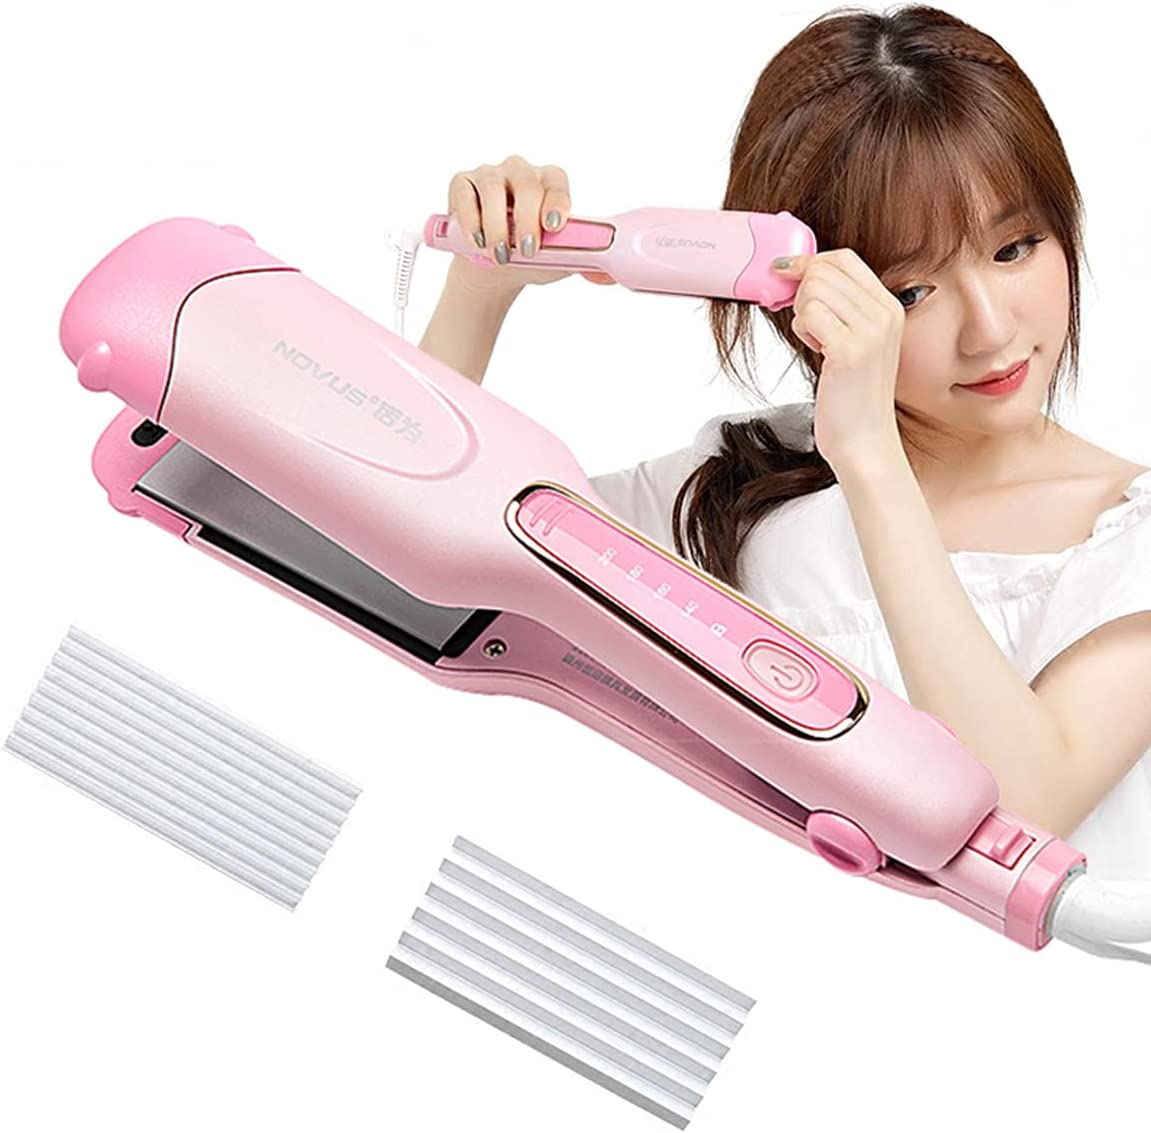 3 Our shop most popular in 1 Multifunction Store Hair Crim Corrugated Iron Straightener